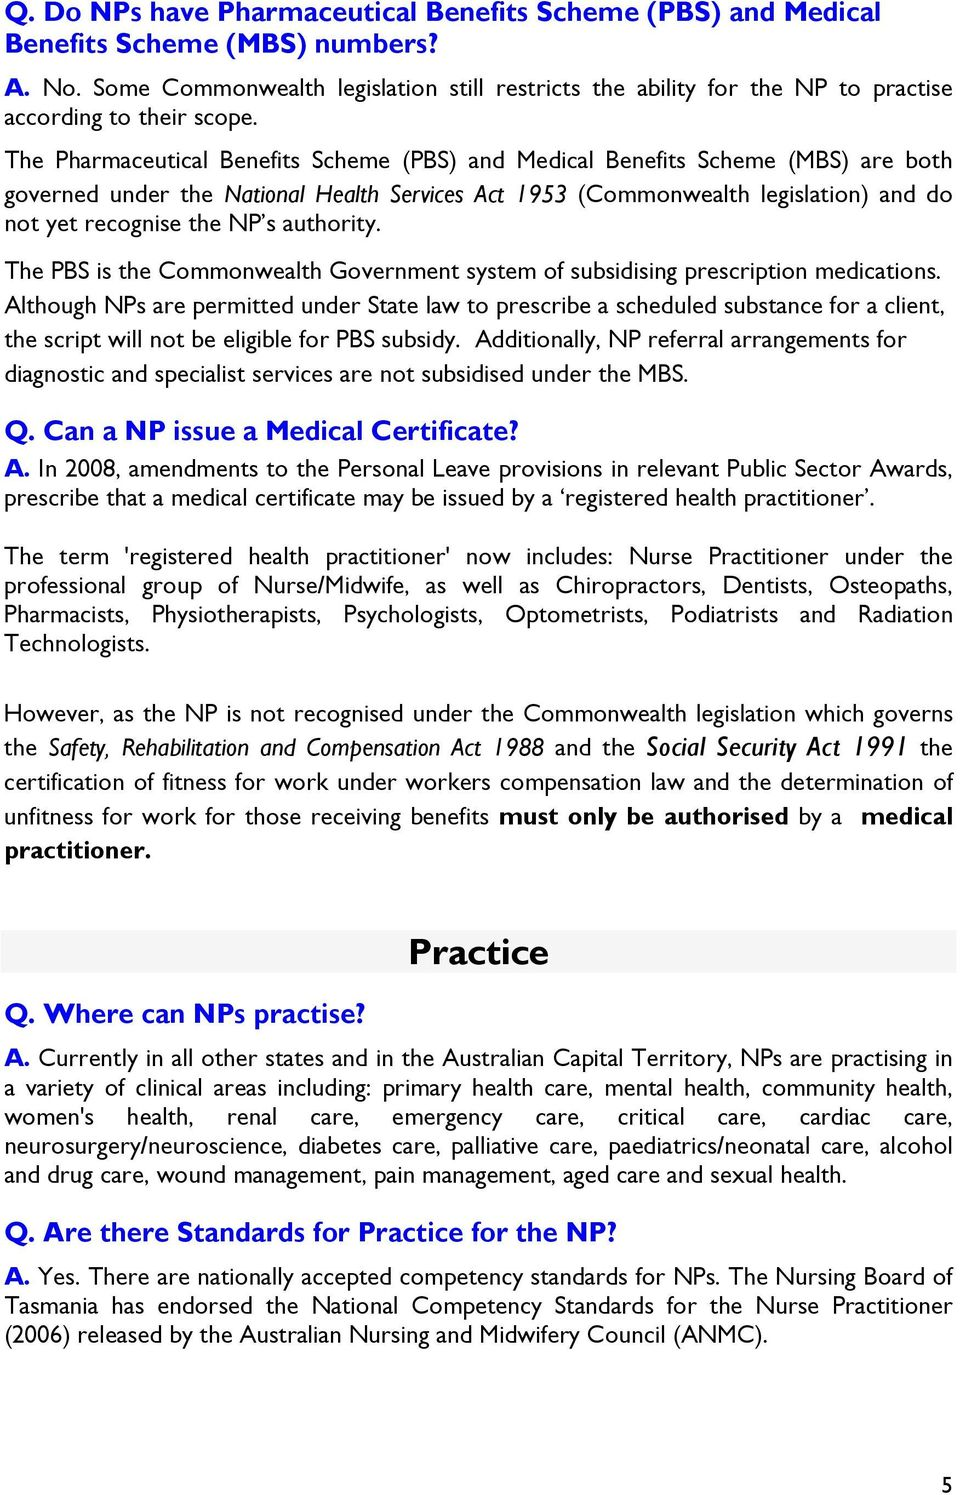 The Pharmaceutical Benefits Scheme (PBS) and Medical Benefits Scheme (MBS) are both governed under the National Health Services Act 1953 (Commonwealth legislation) and do not yet recognise the NP s